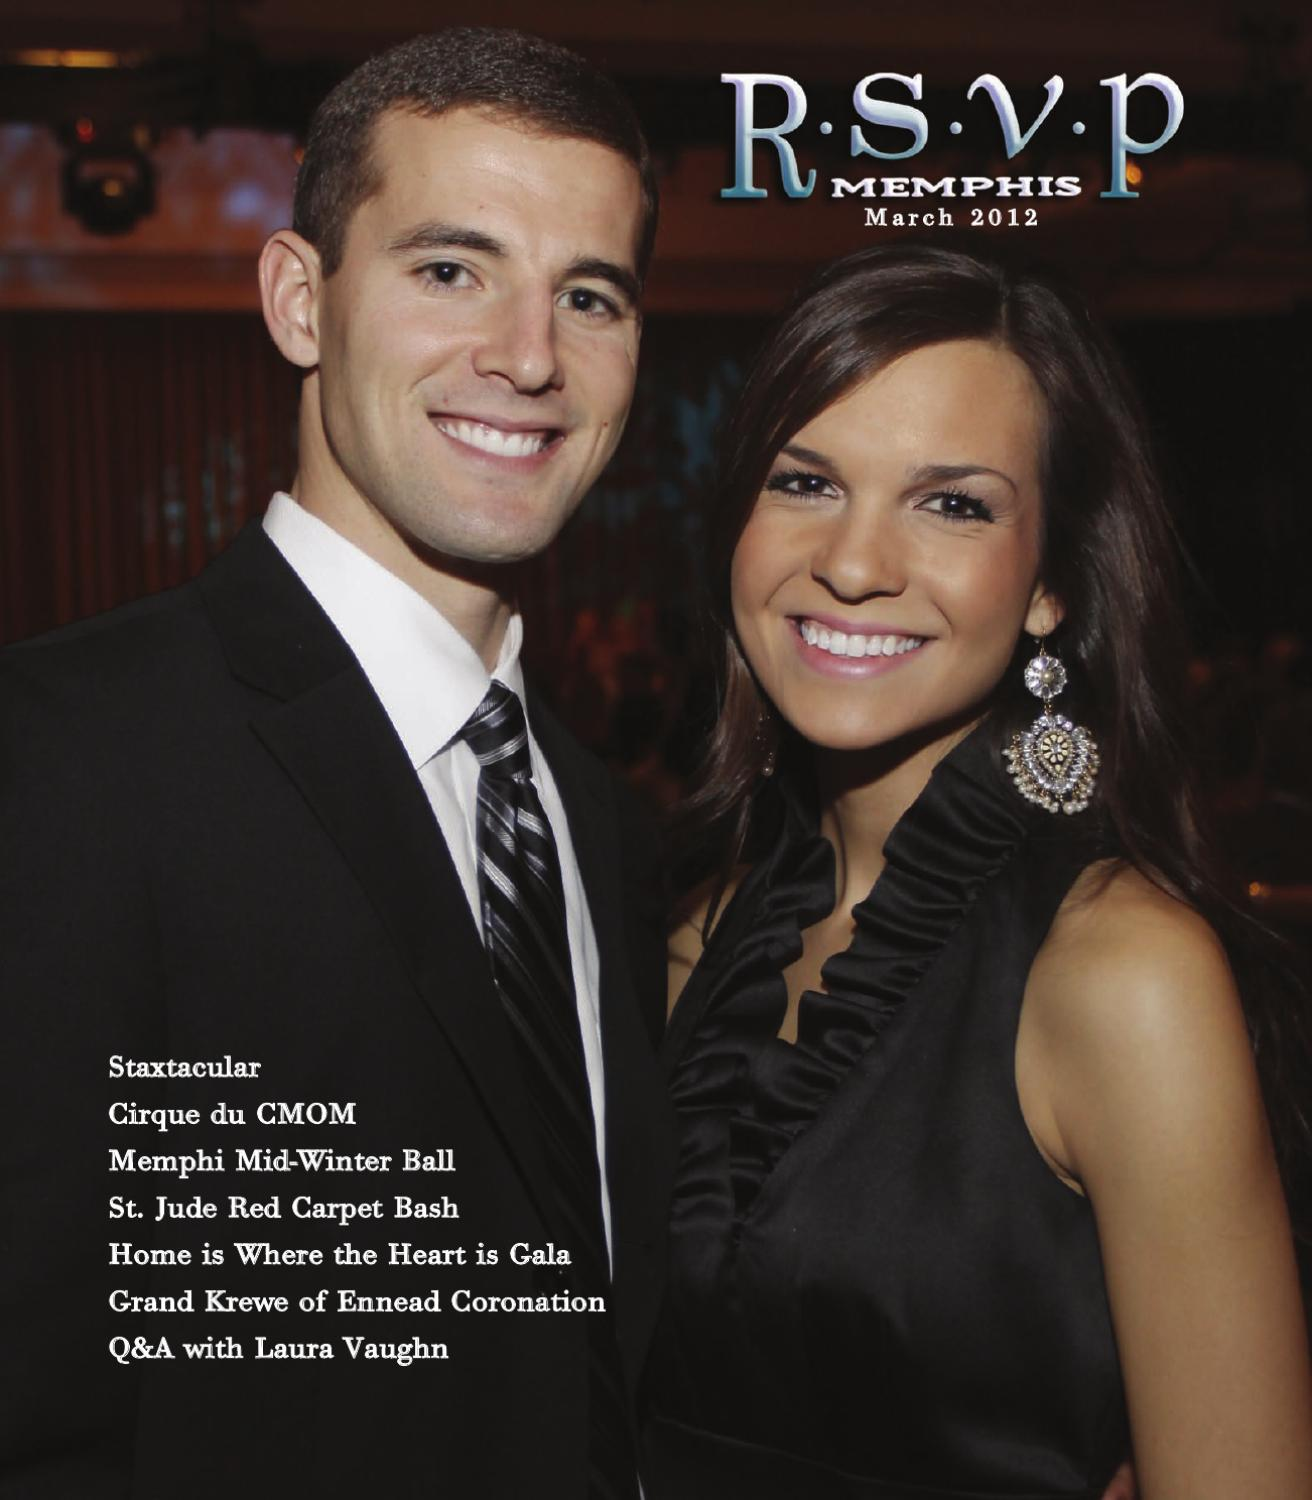 RSVP Magazine March 2012 by RSVP Magazine - issuu